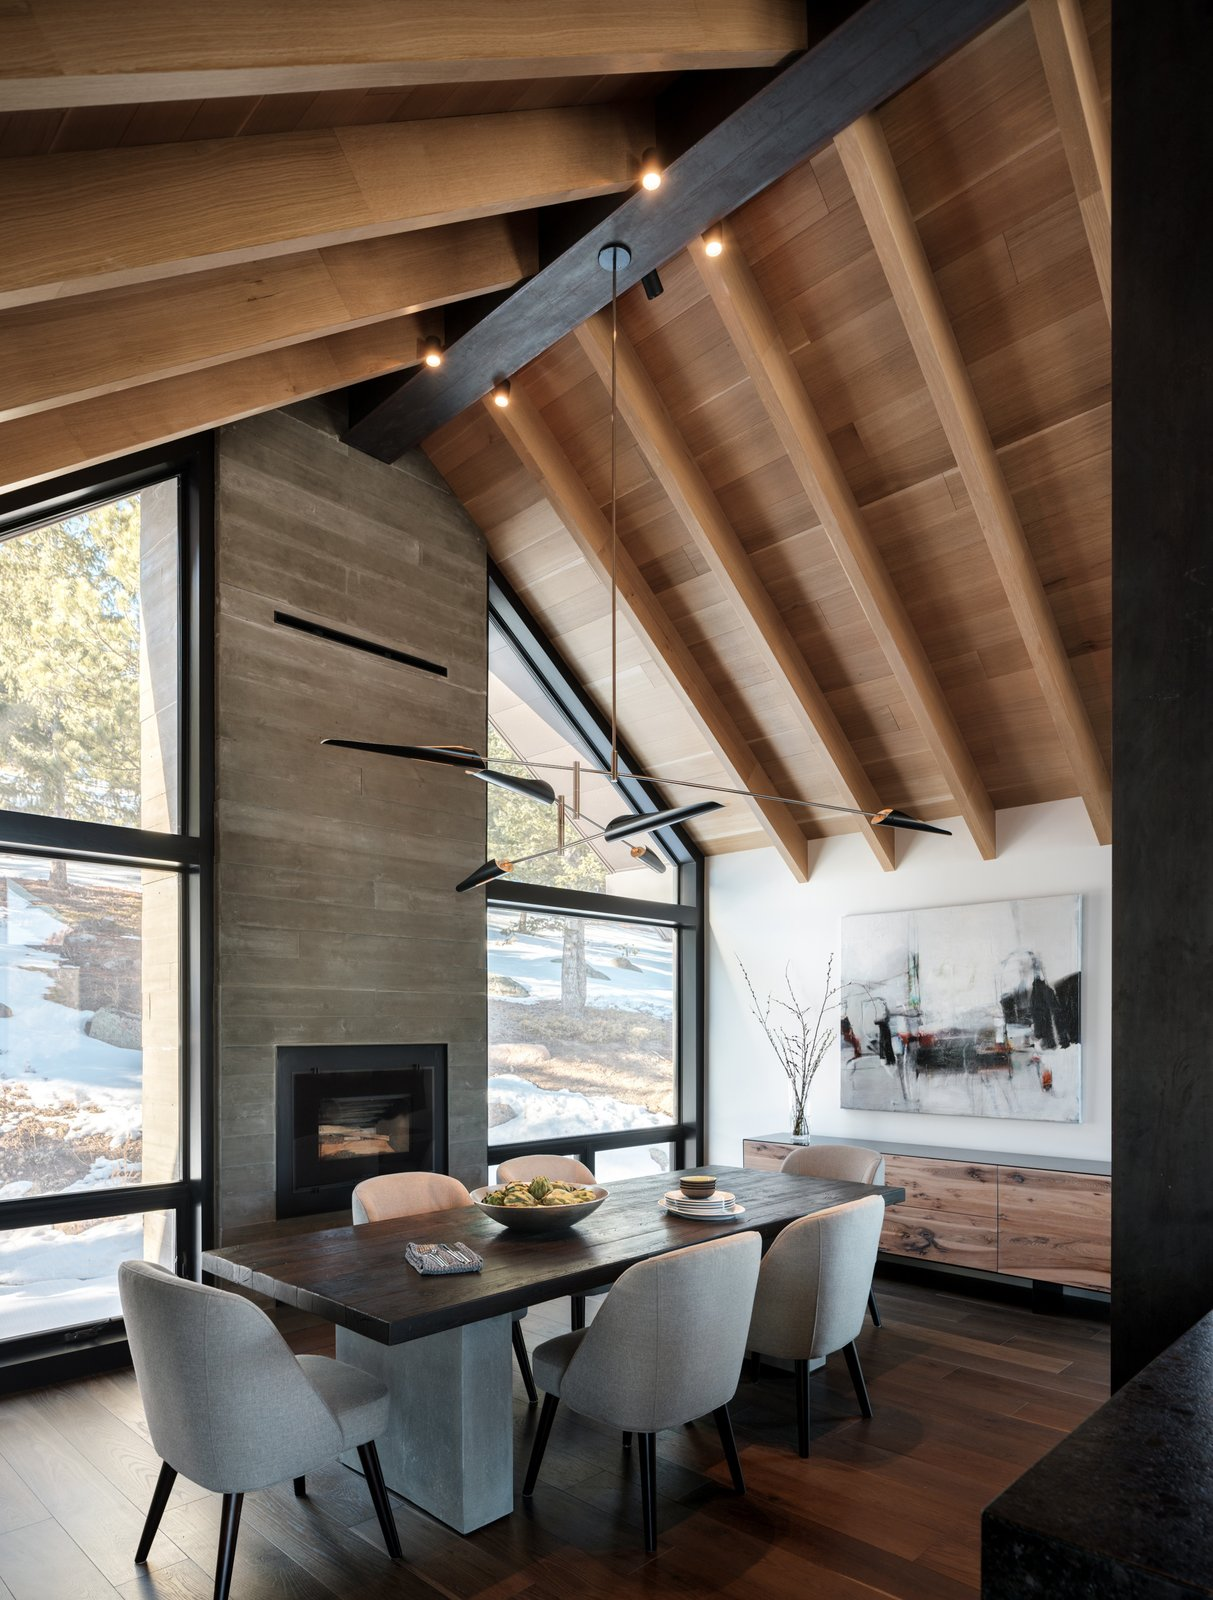 Dining, Table, Accent, Chair, Storage, Pendant, Dark Hardwood, and Gas Burning Dining rooms don't have to be overly formal and stuffy. We especially love the custom credenza and the Sarus Mobile  Best Dining Accent Table Pendant Photos from Modern Cabin